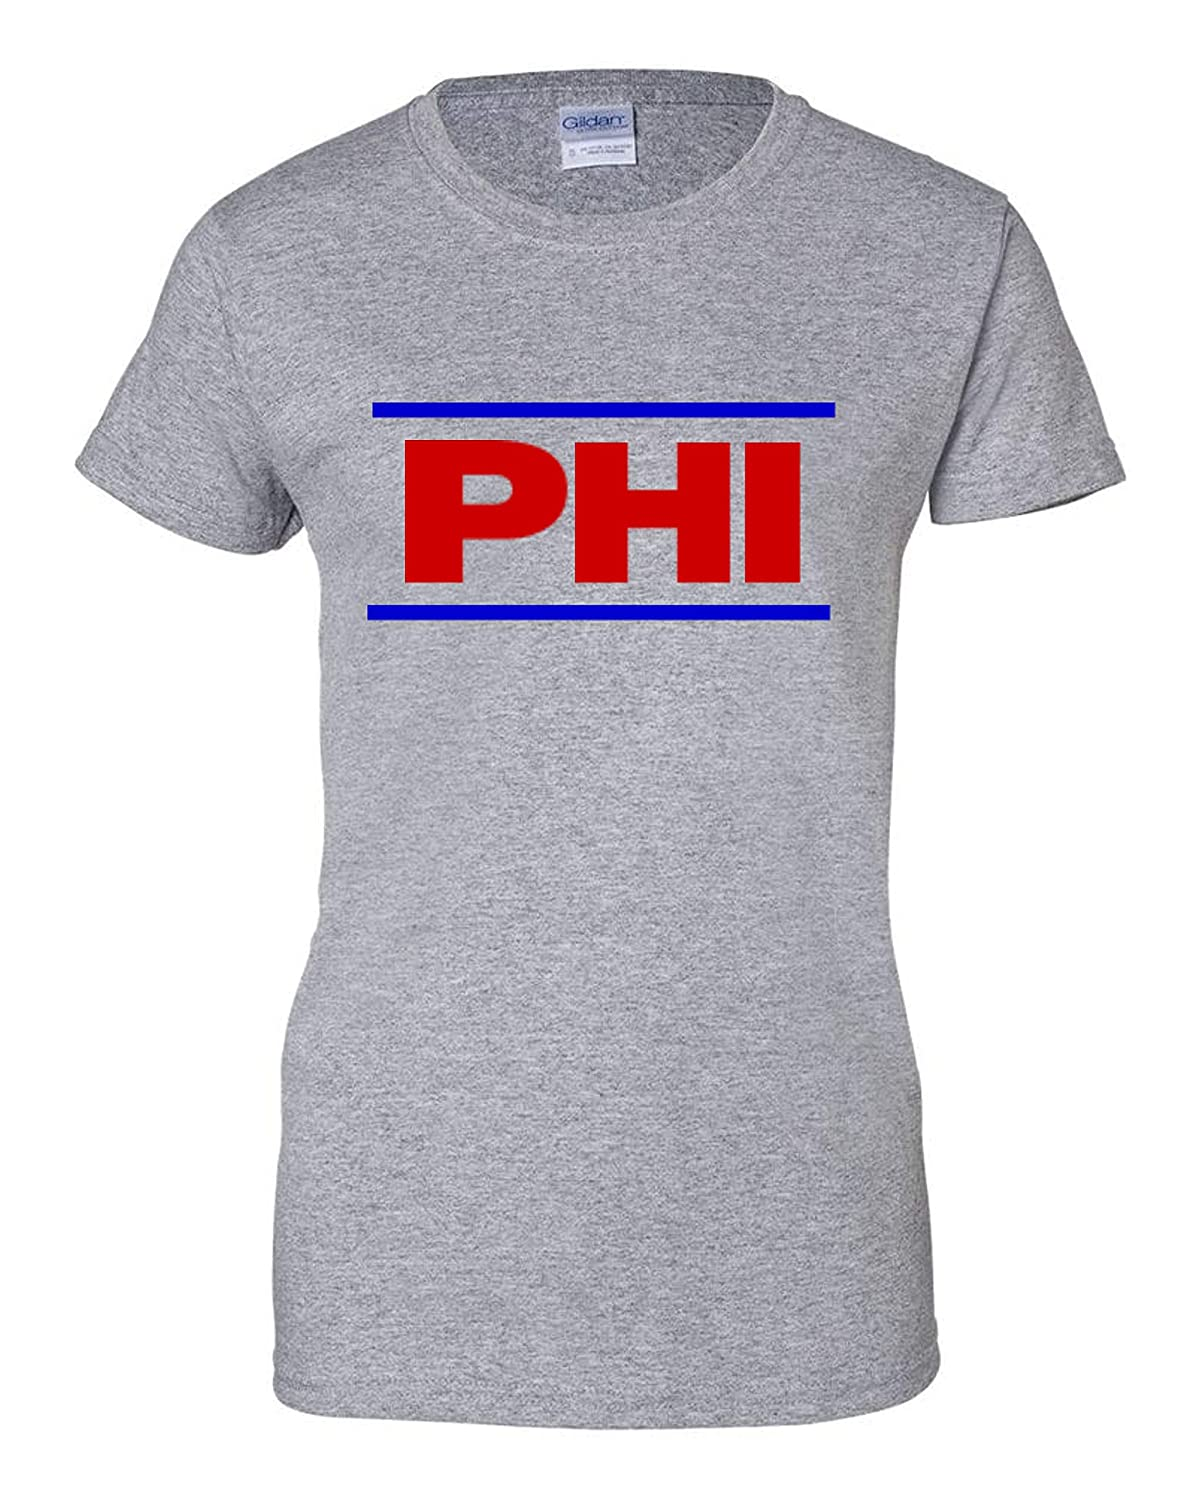 2XL Wallys Custom Apparel Philadelphia T Shirt Gray His and Hers Available Small